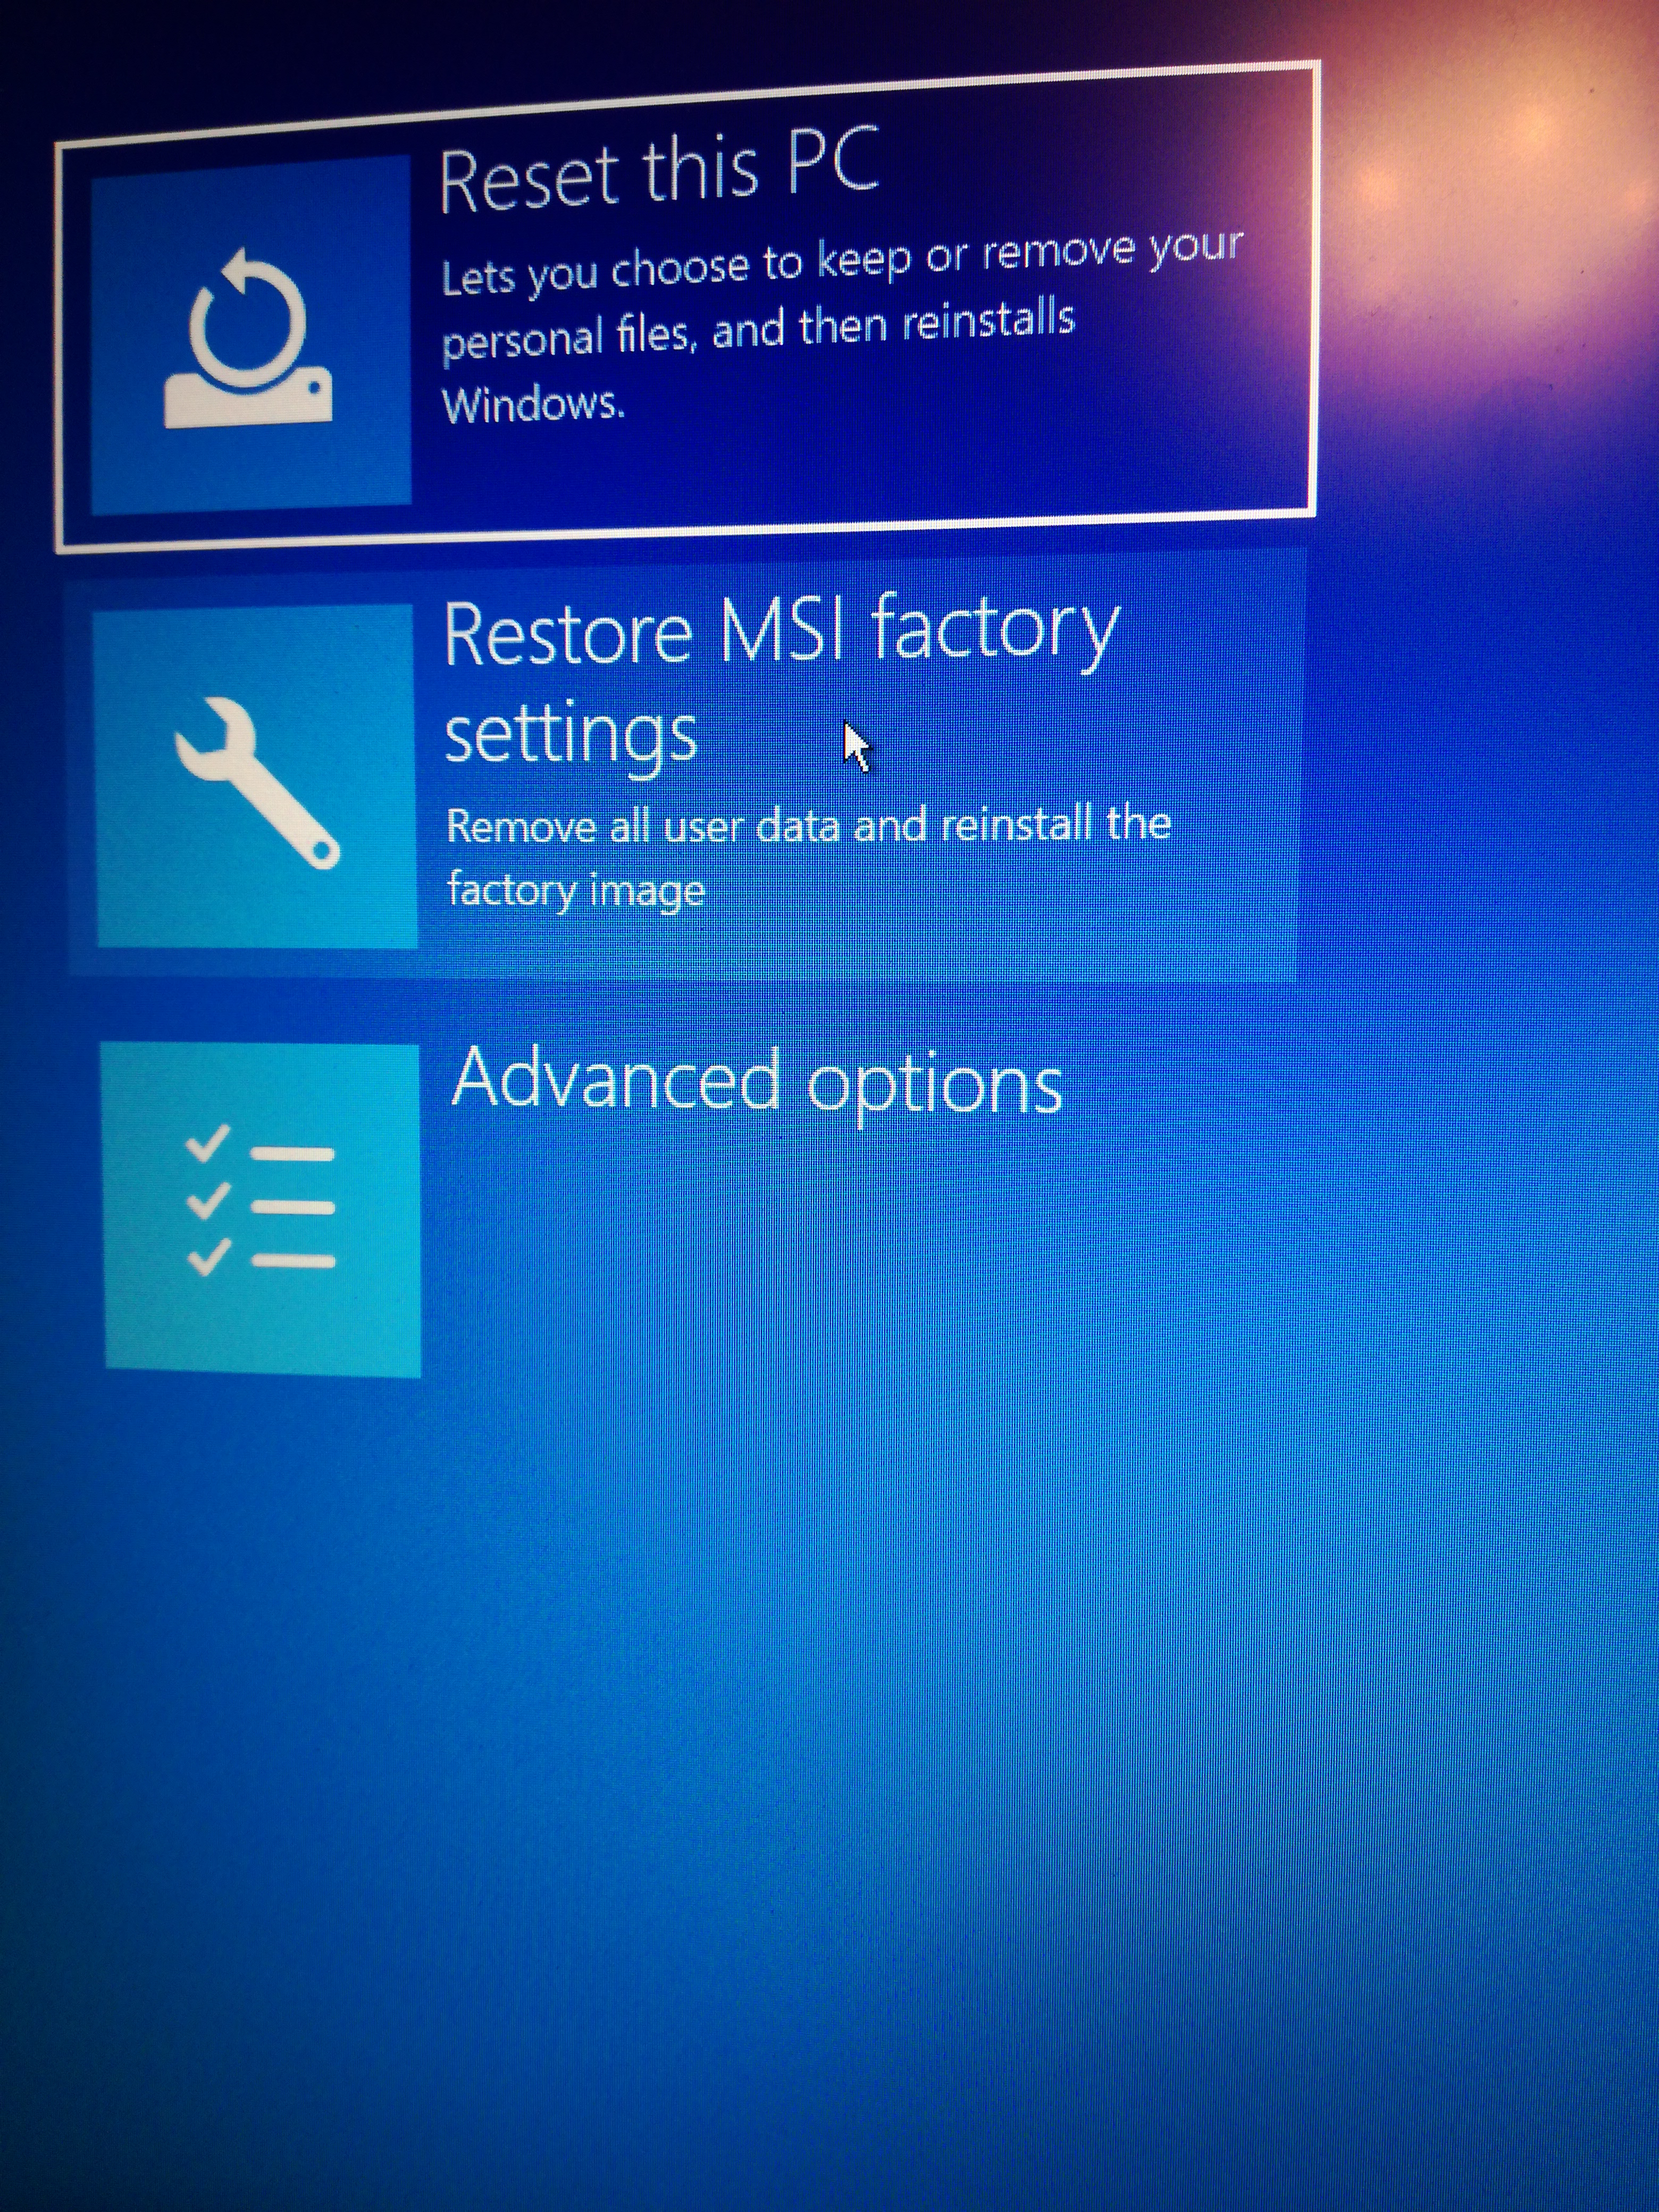 Stuck at recovery loop and MSI factory reset with Reagant